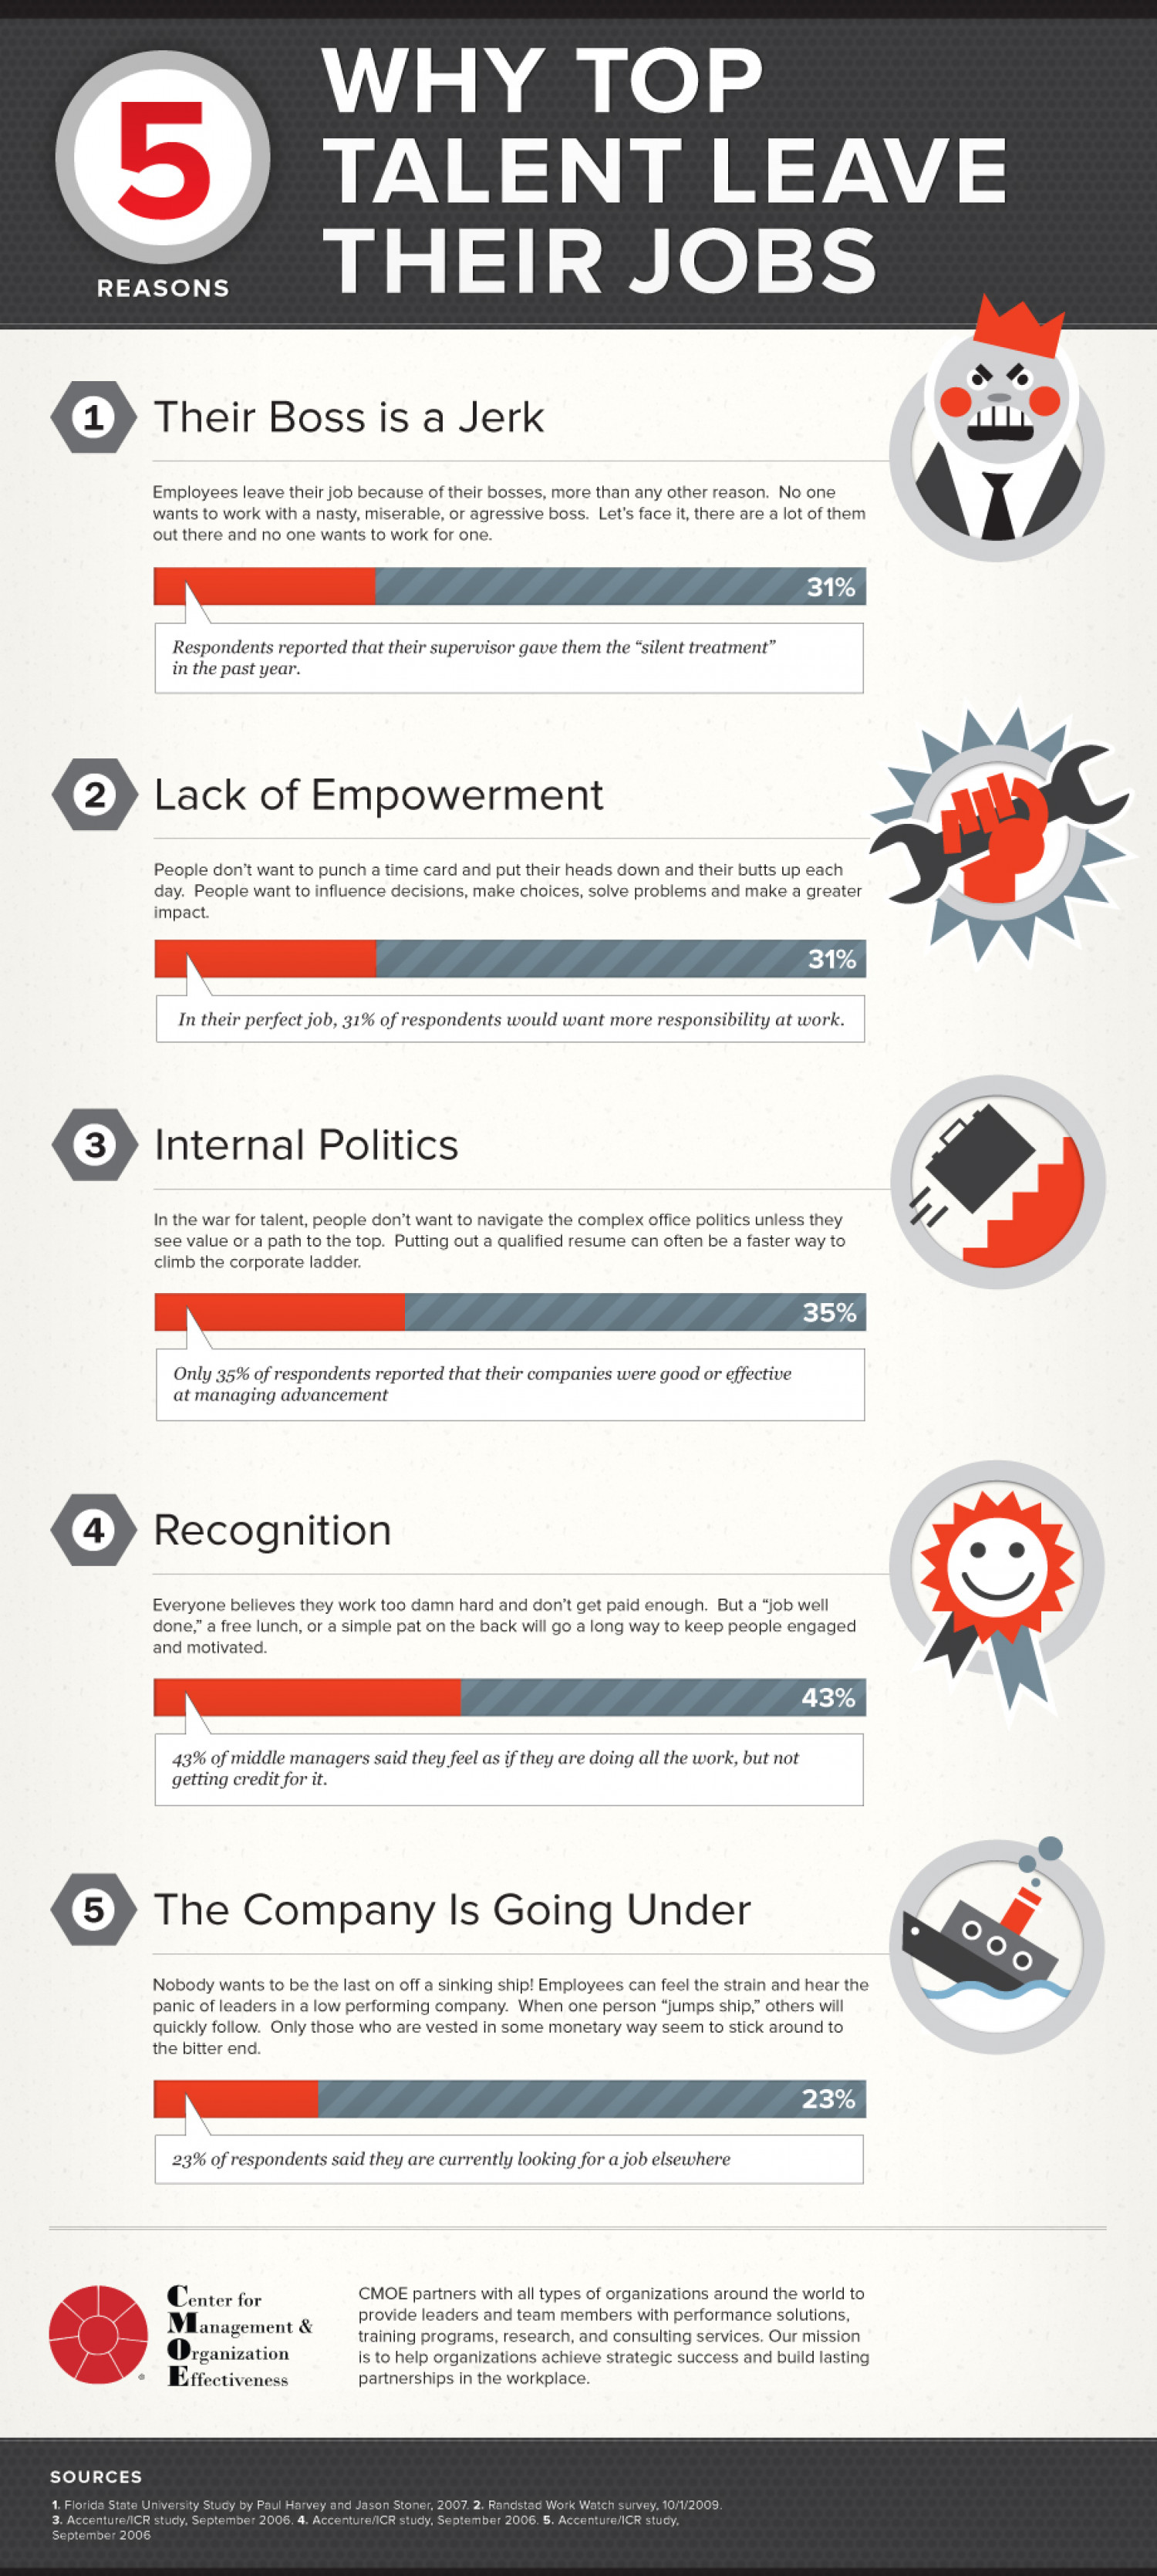 5 Reasons Top Talent Leave Their Jobs Infographic